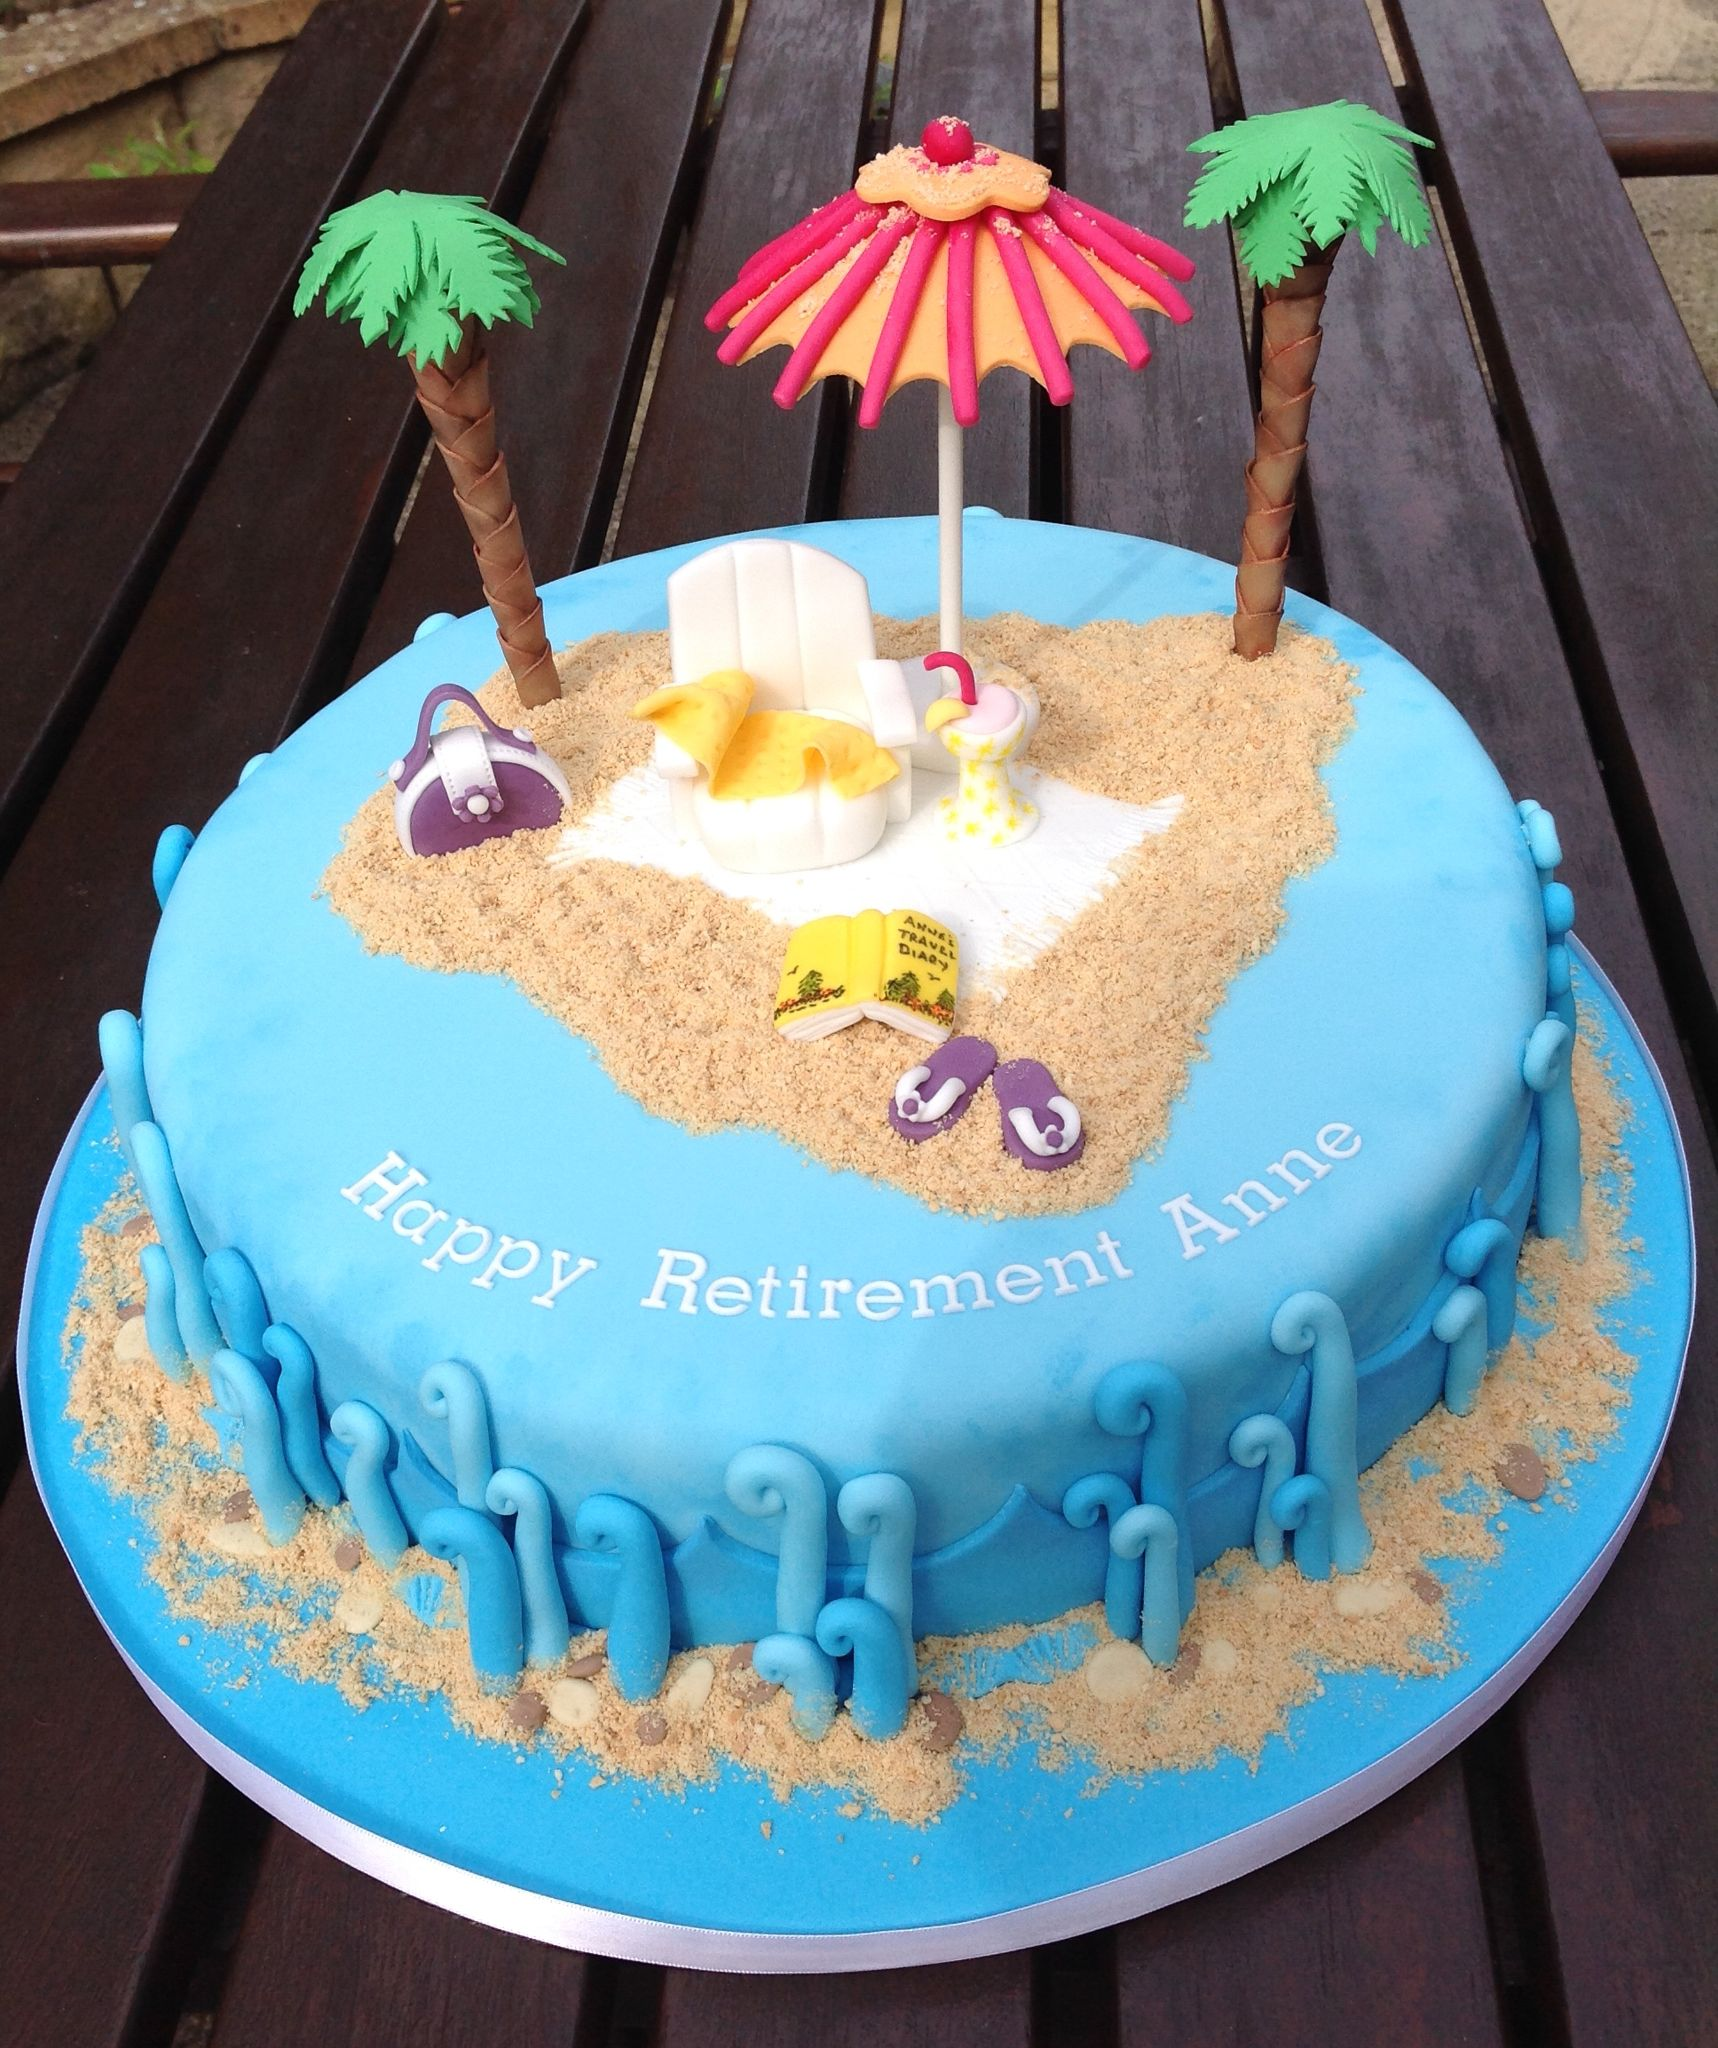 Funny anniversary cake quotes - Beach Themed Retirement Cake